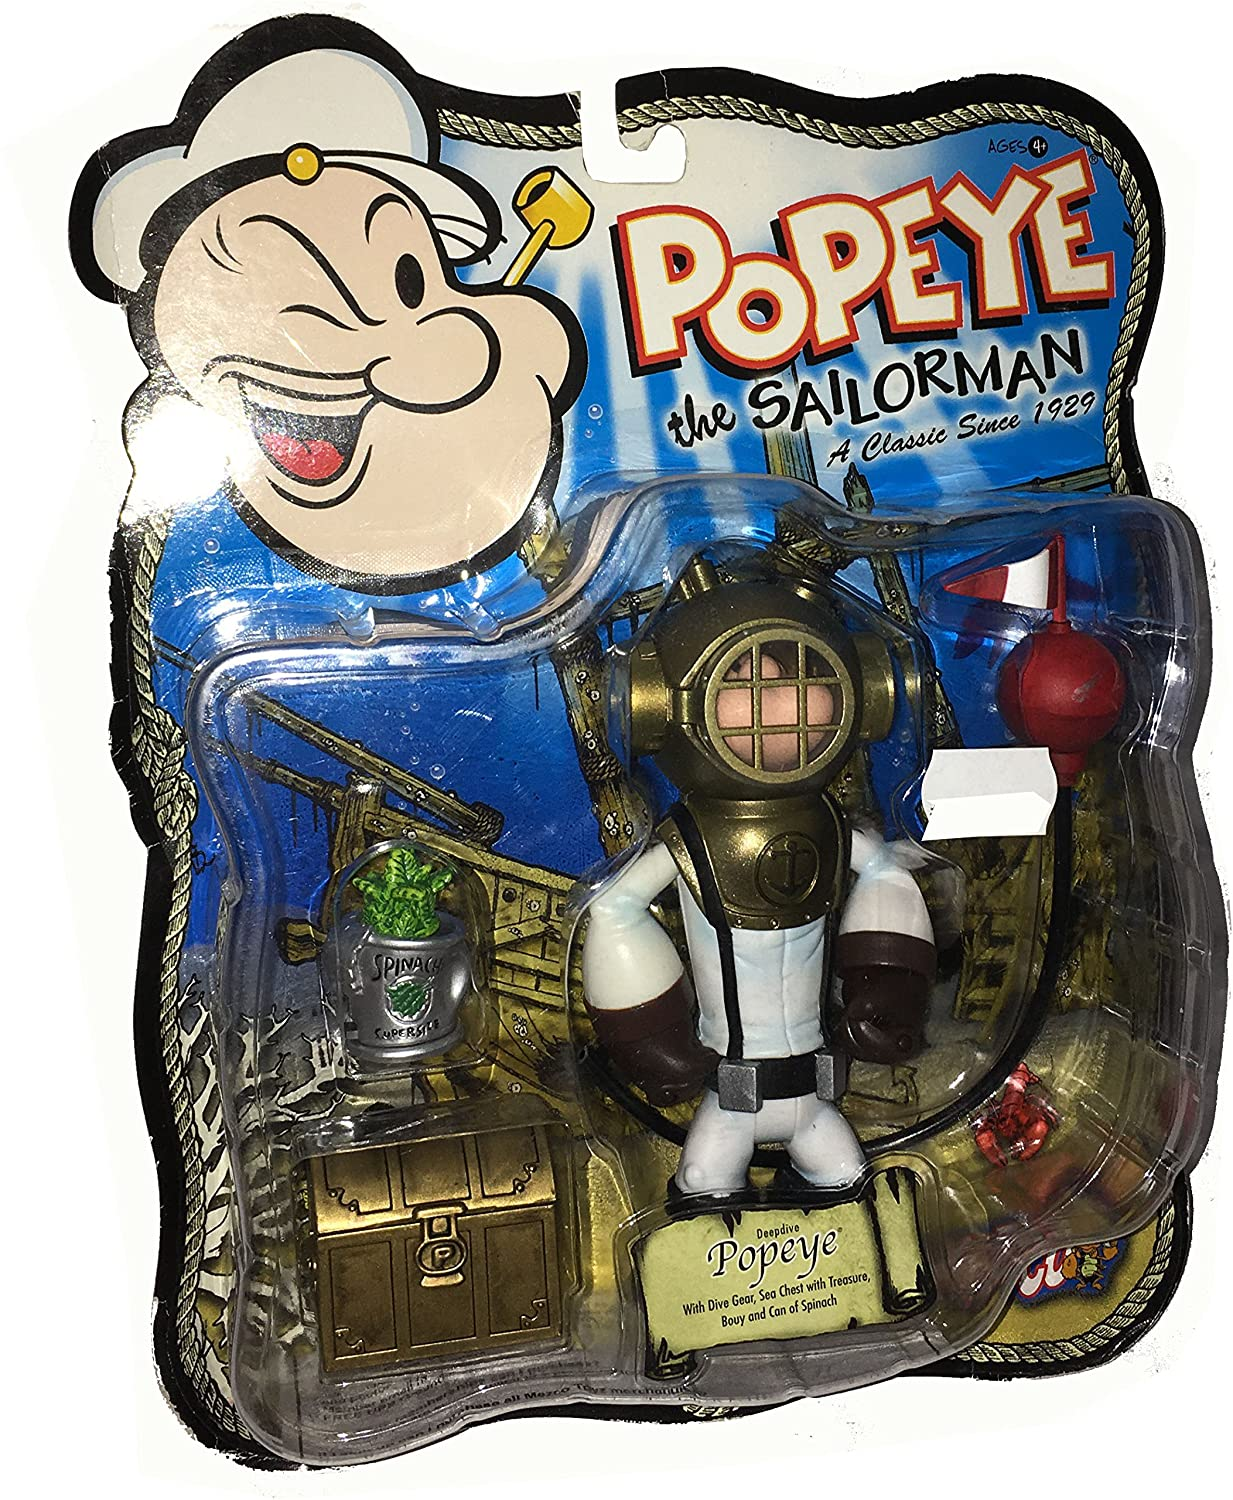 POPEYE the Sailorman Classiv TV Actionfiguren Reihe: Deepdive POPEYE